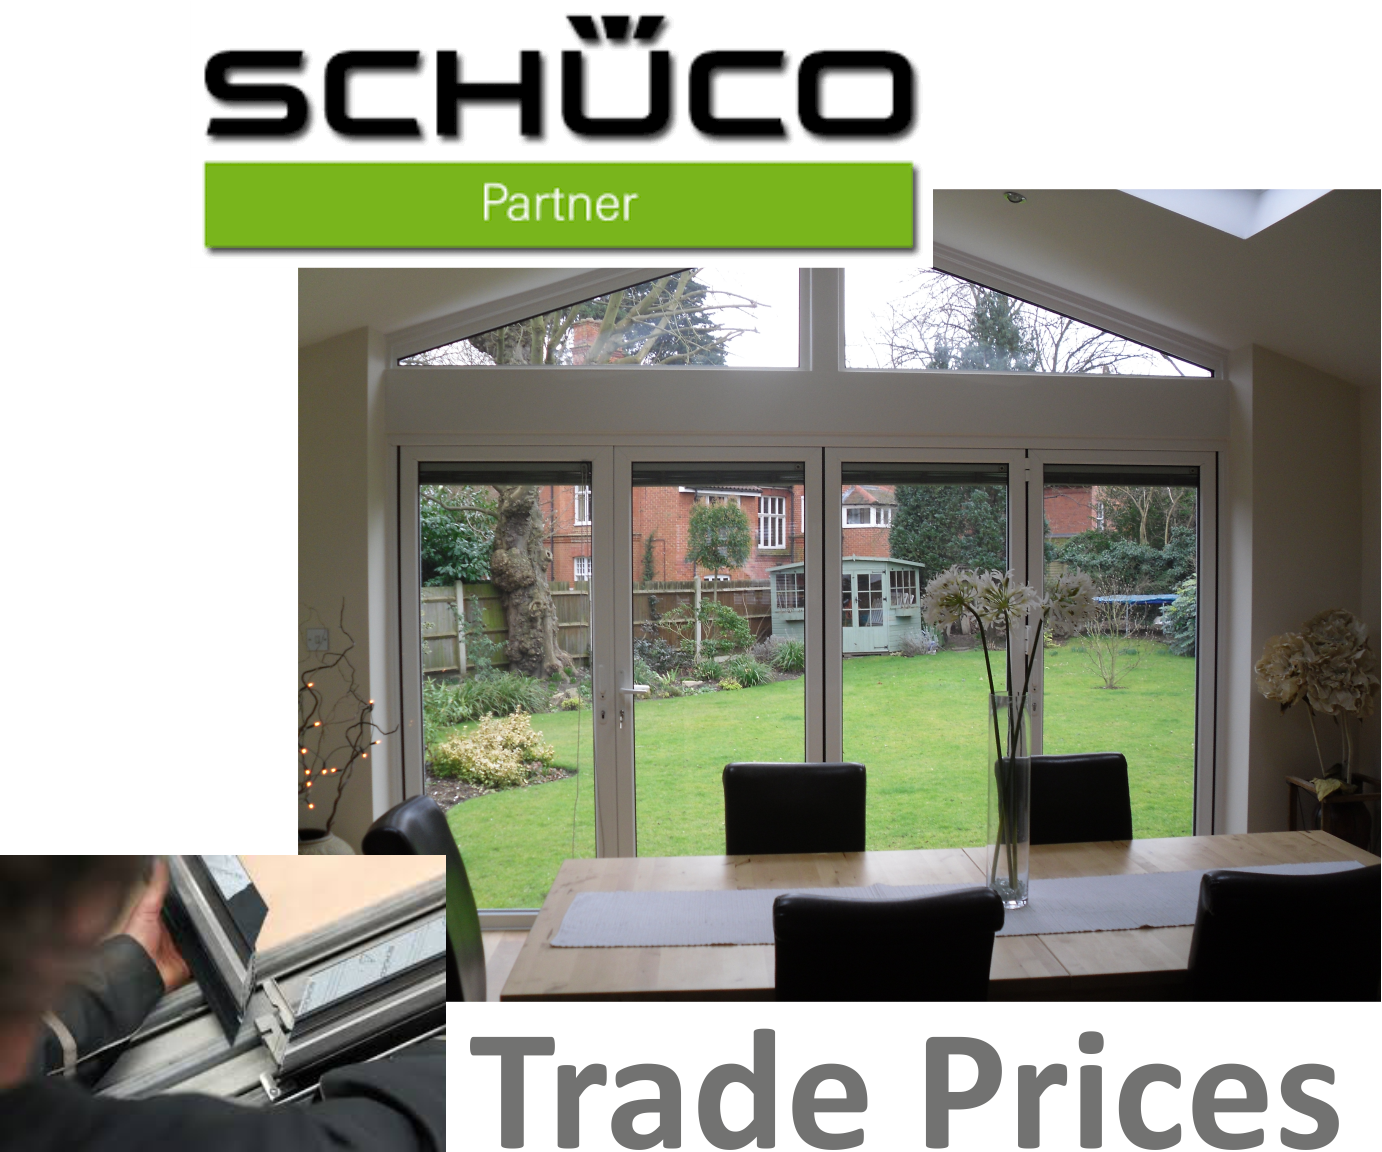 Schuco Partner - Trade Prices